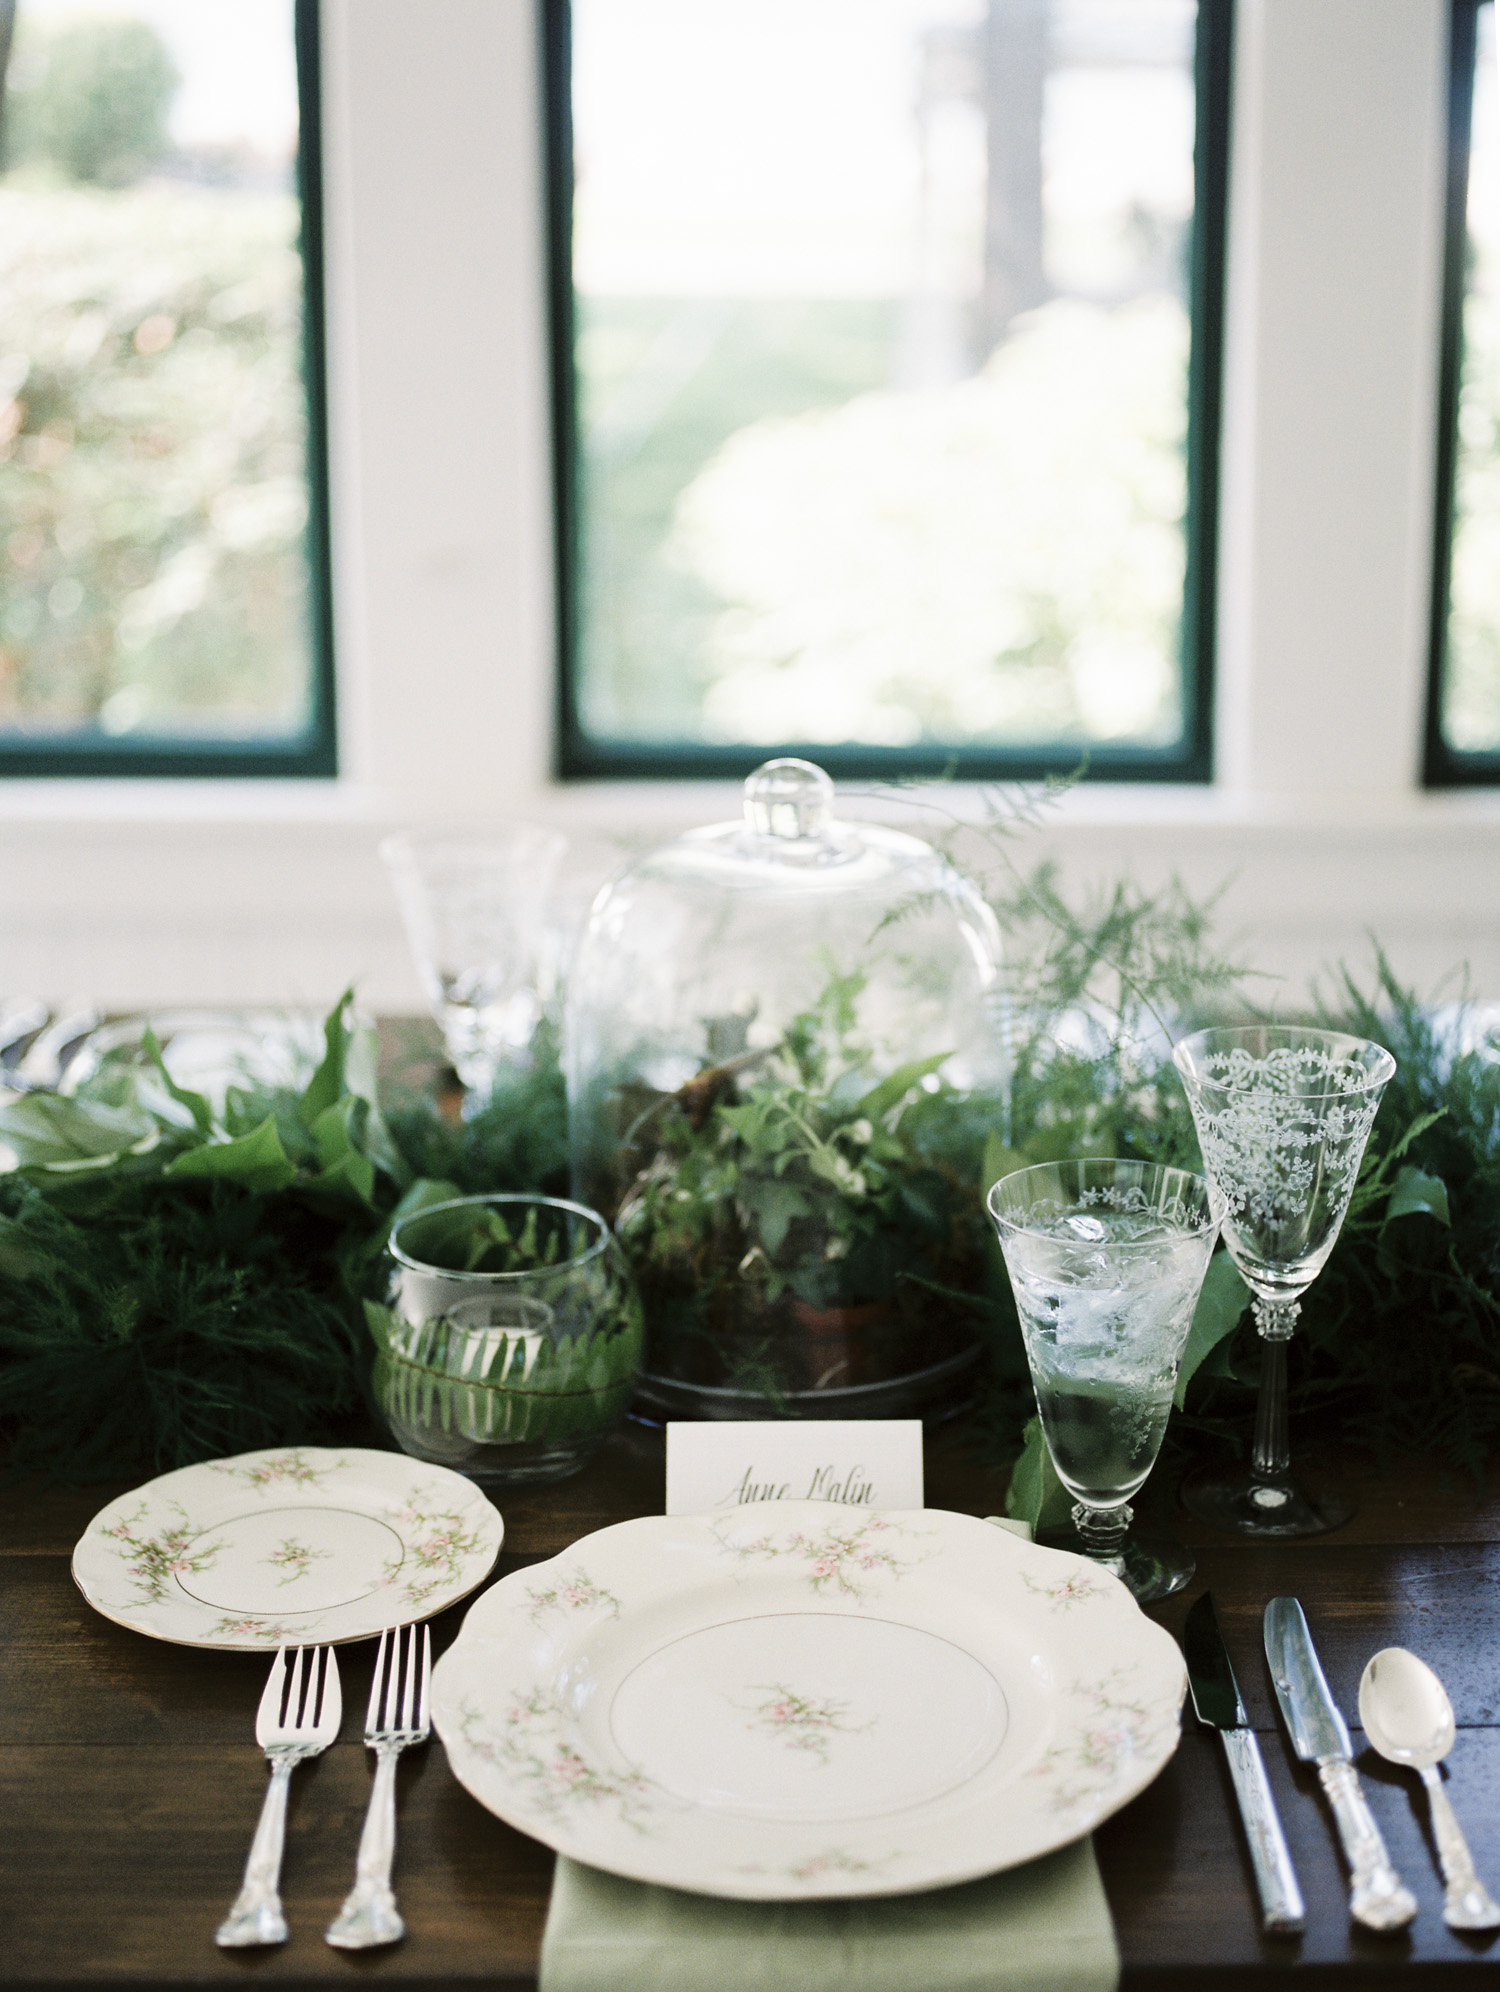 wedding dinner table decor with a cloche and vintage dinnerware in Petoskey, Michigan